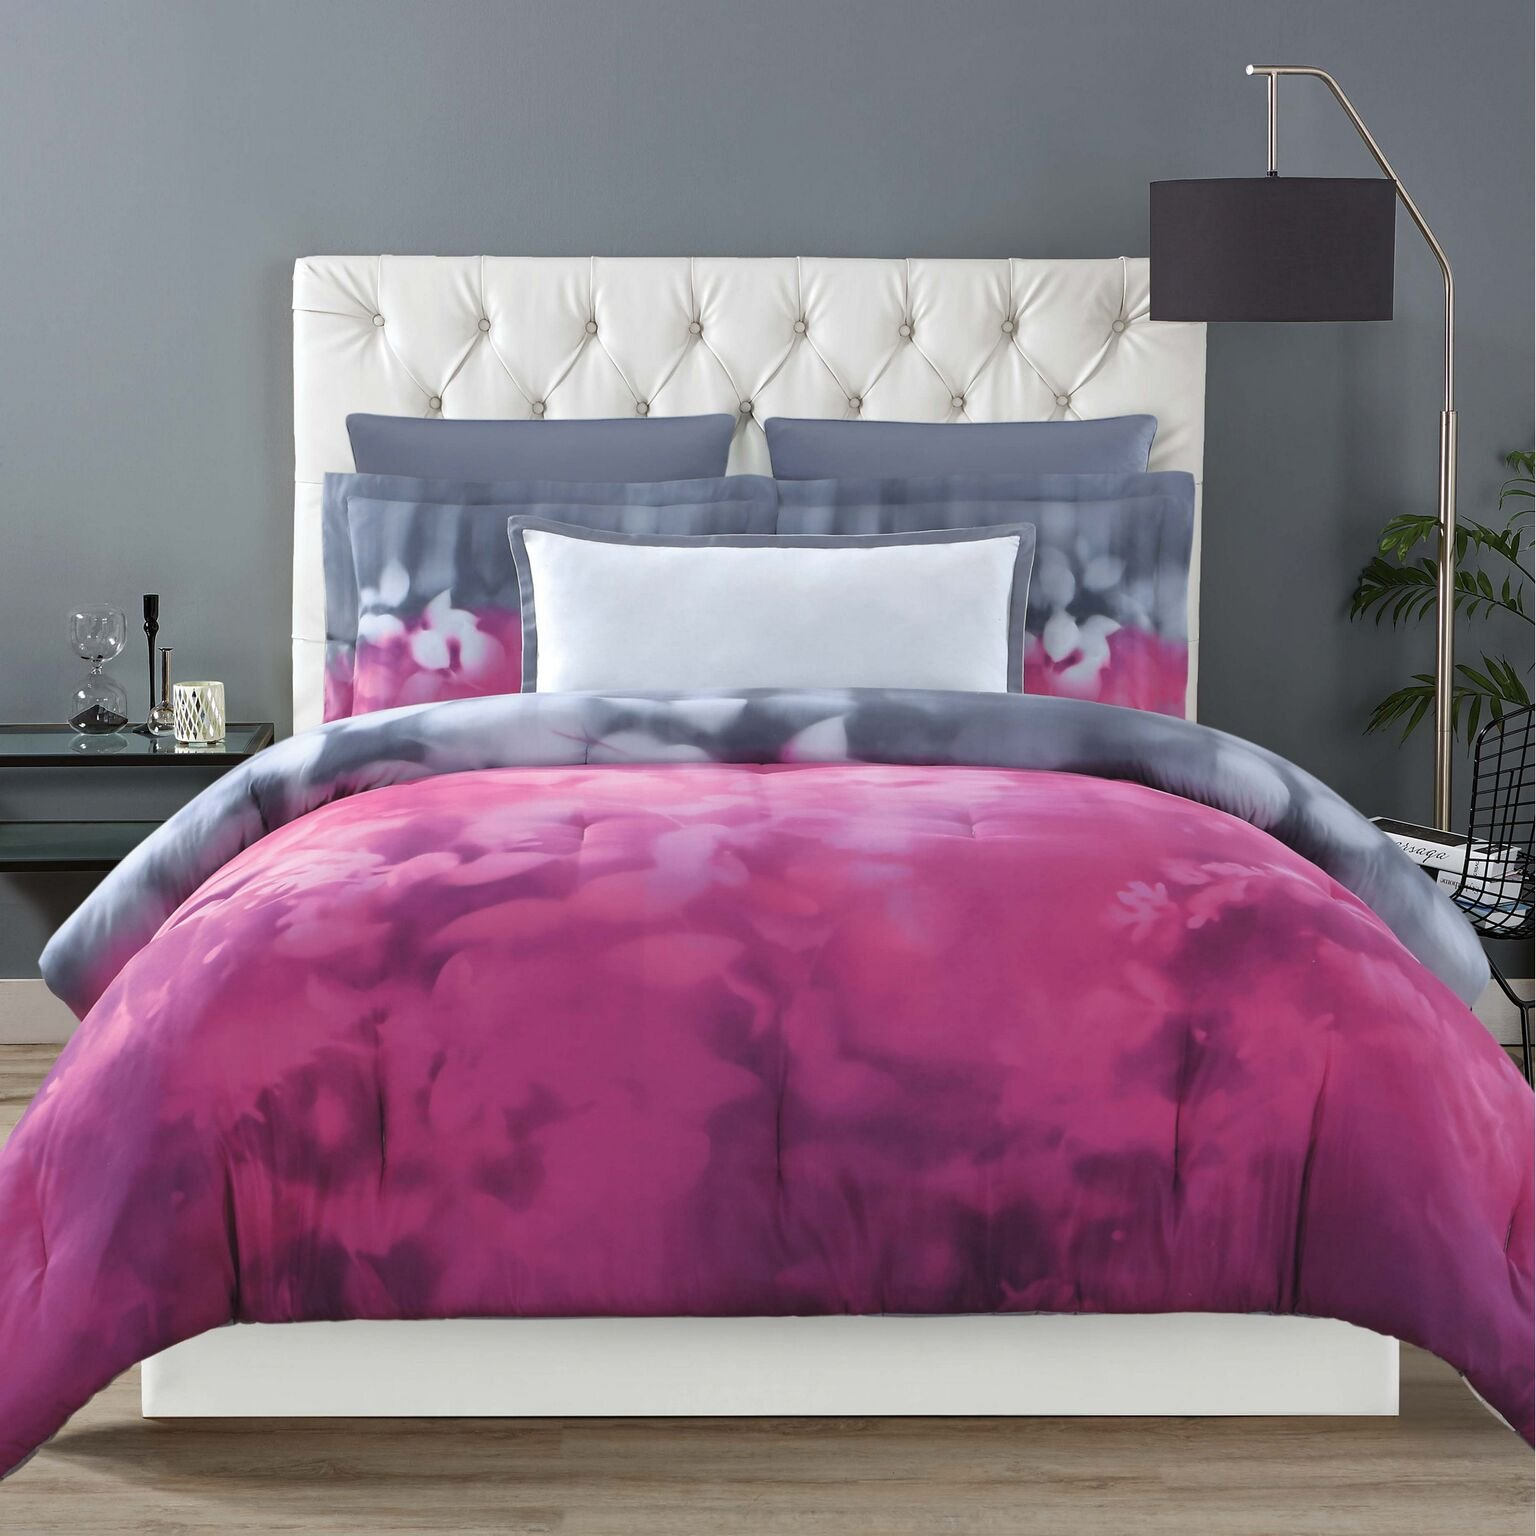 Christian Siriano Botanical Ombre Full/Queen 3 Piece Comforter Set